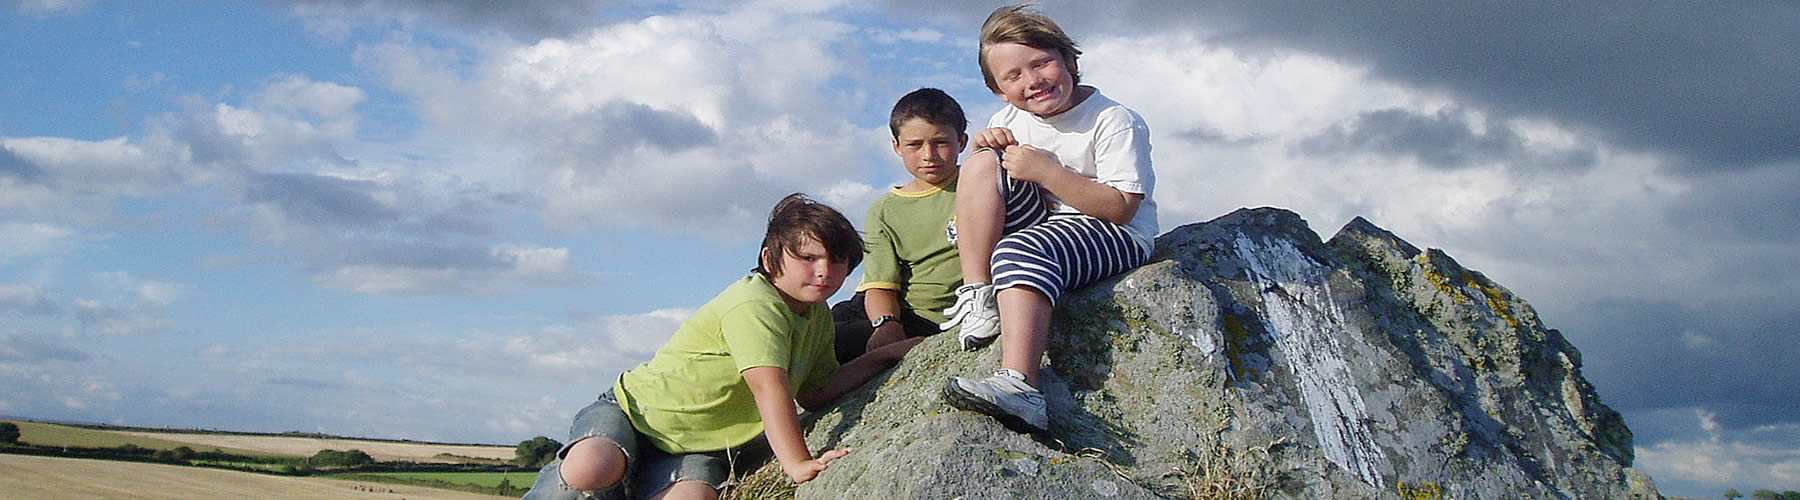 Children on Rock